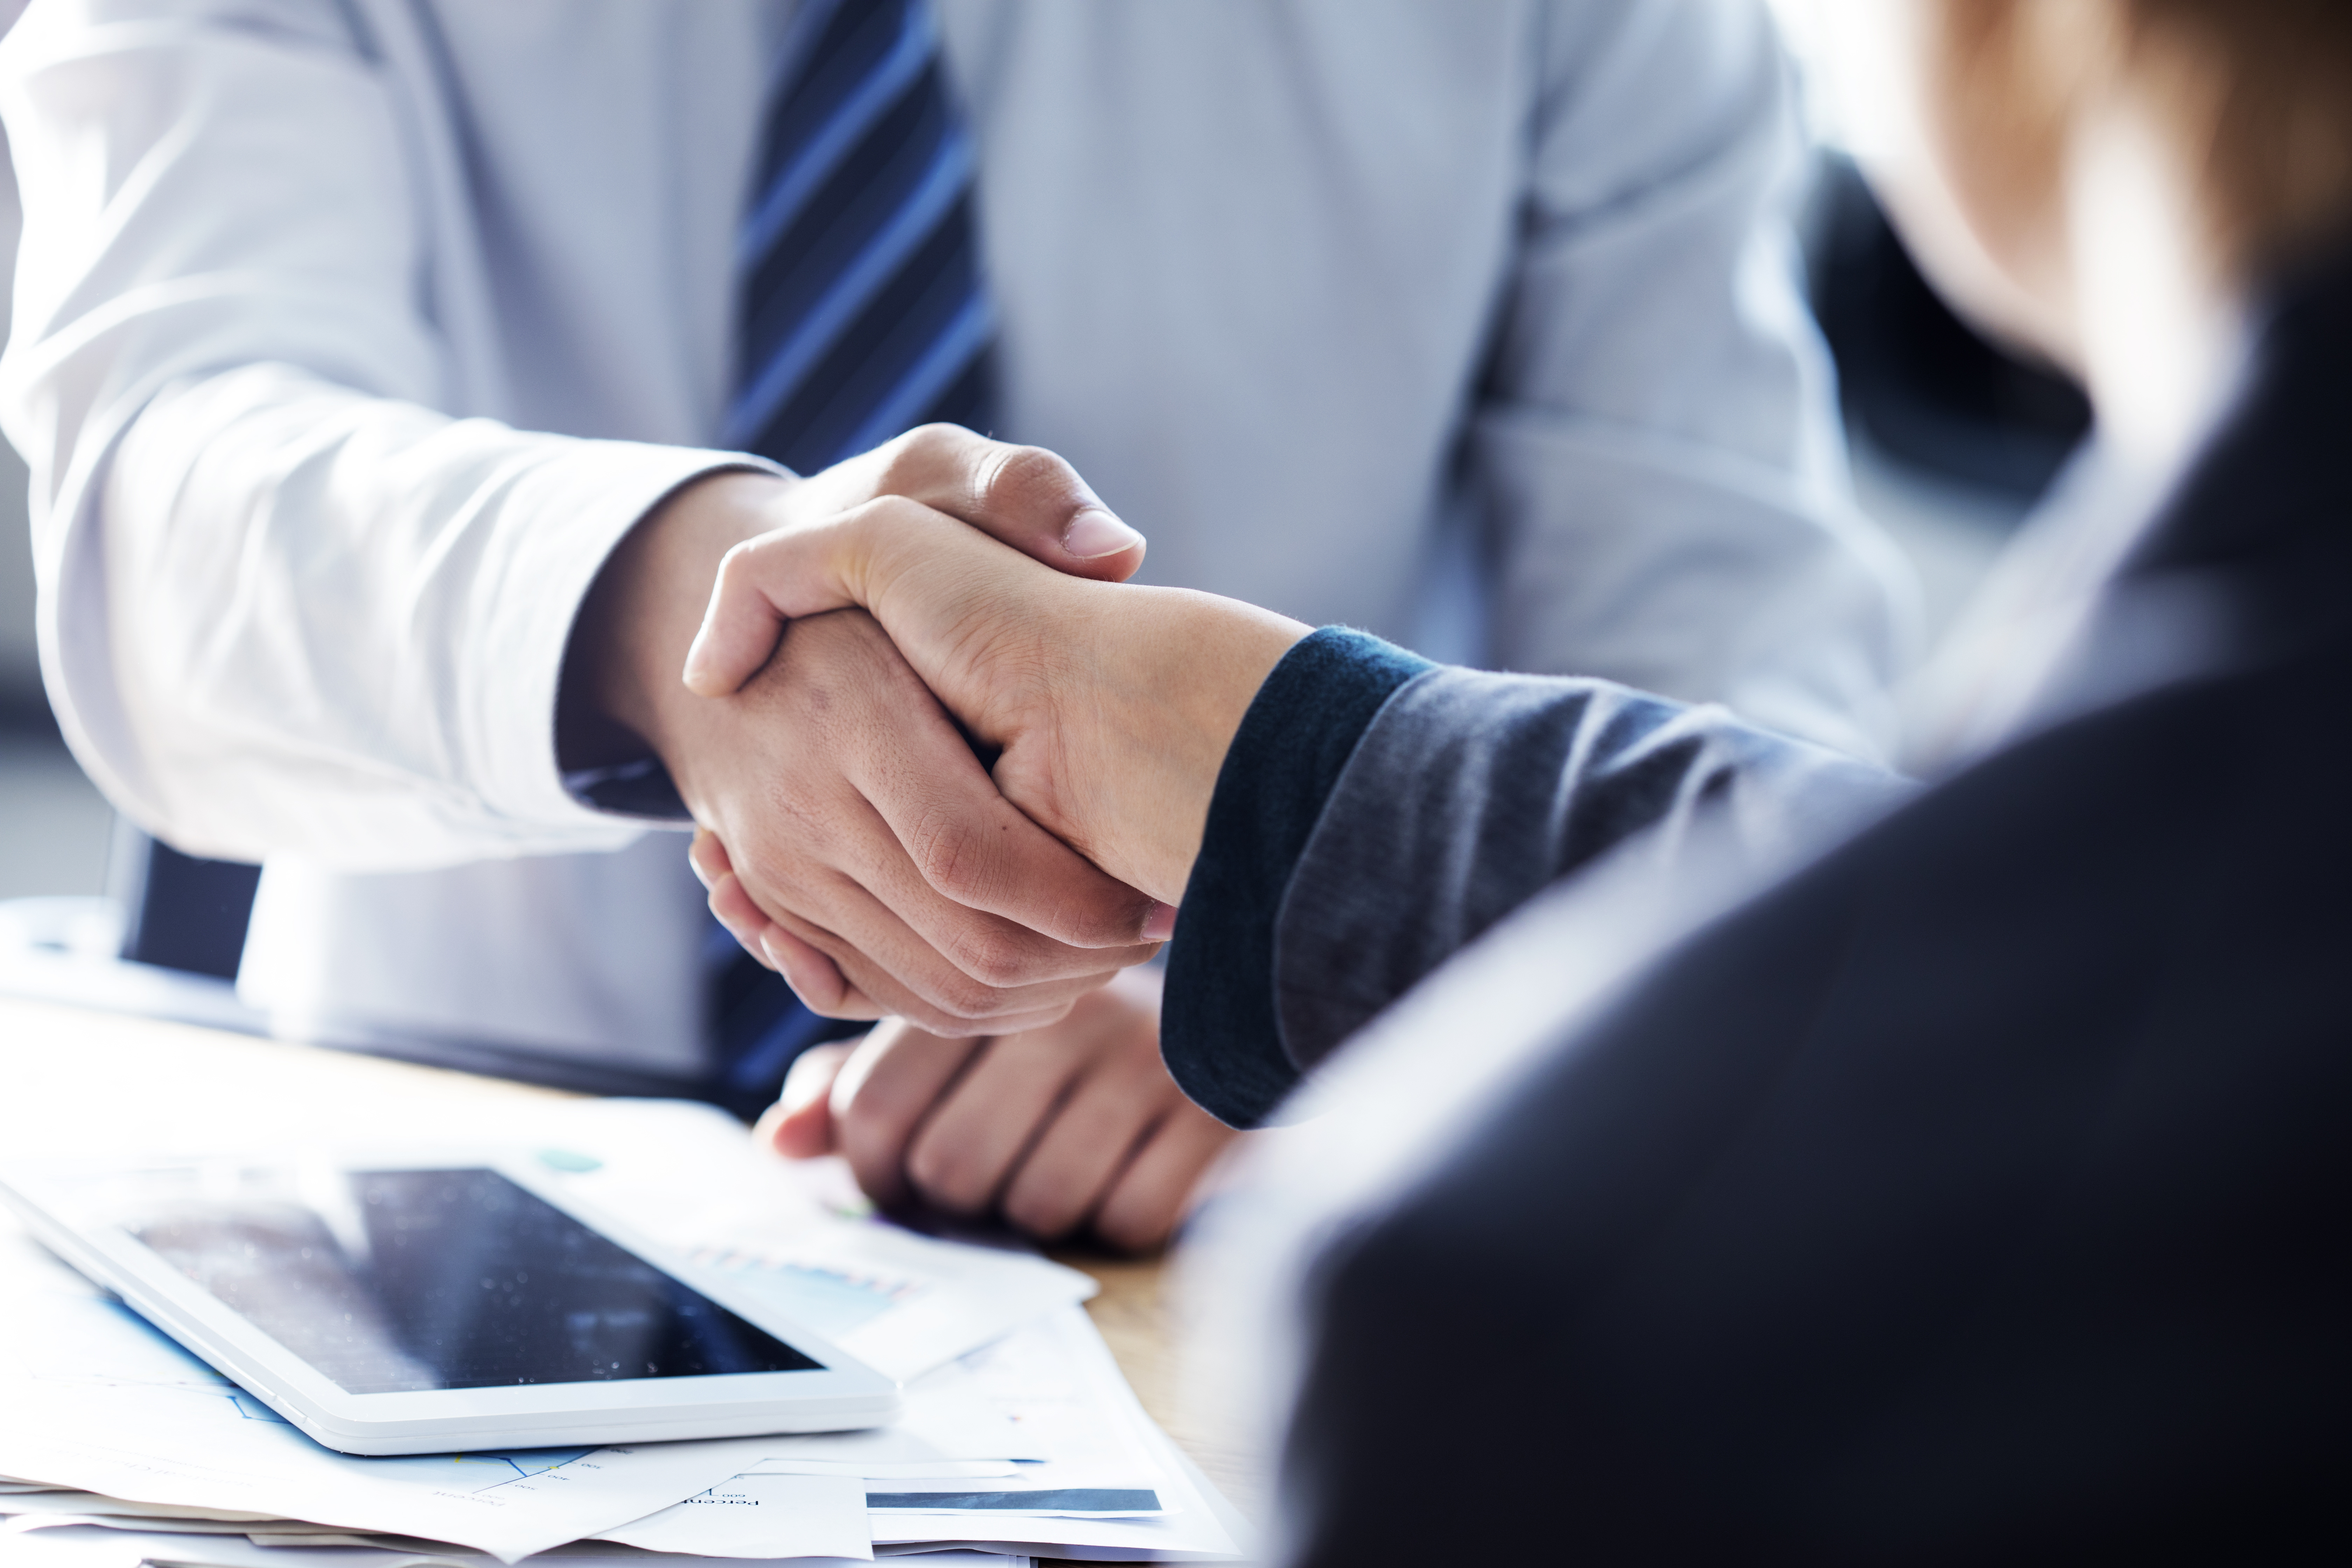 Insurance agent and client shaking hands.